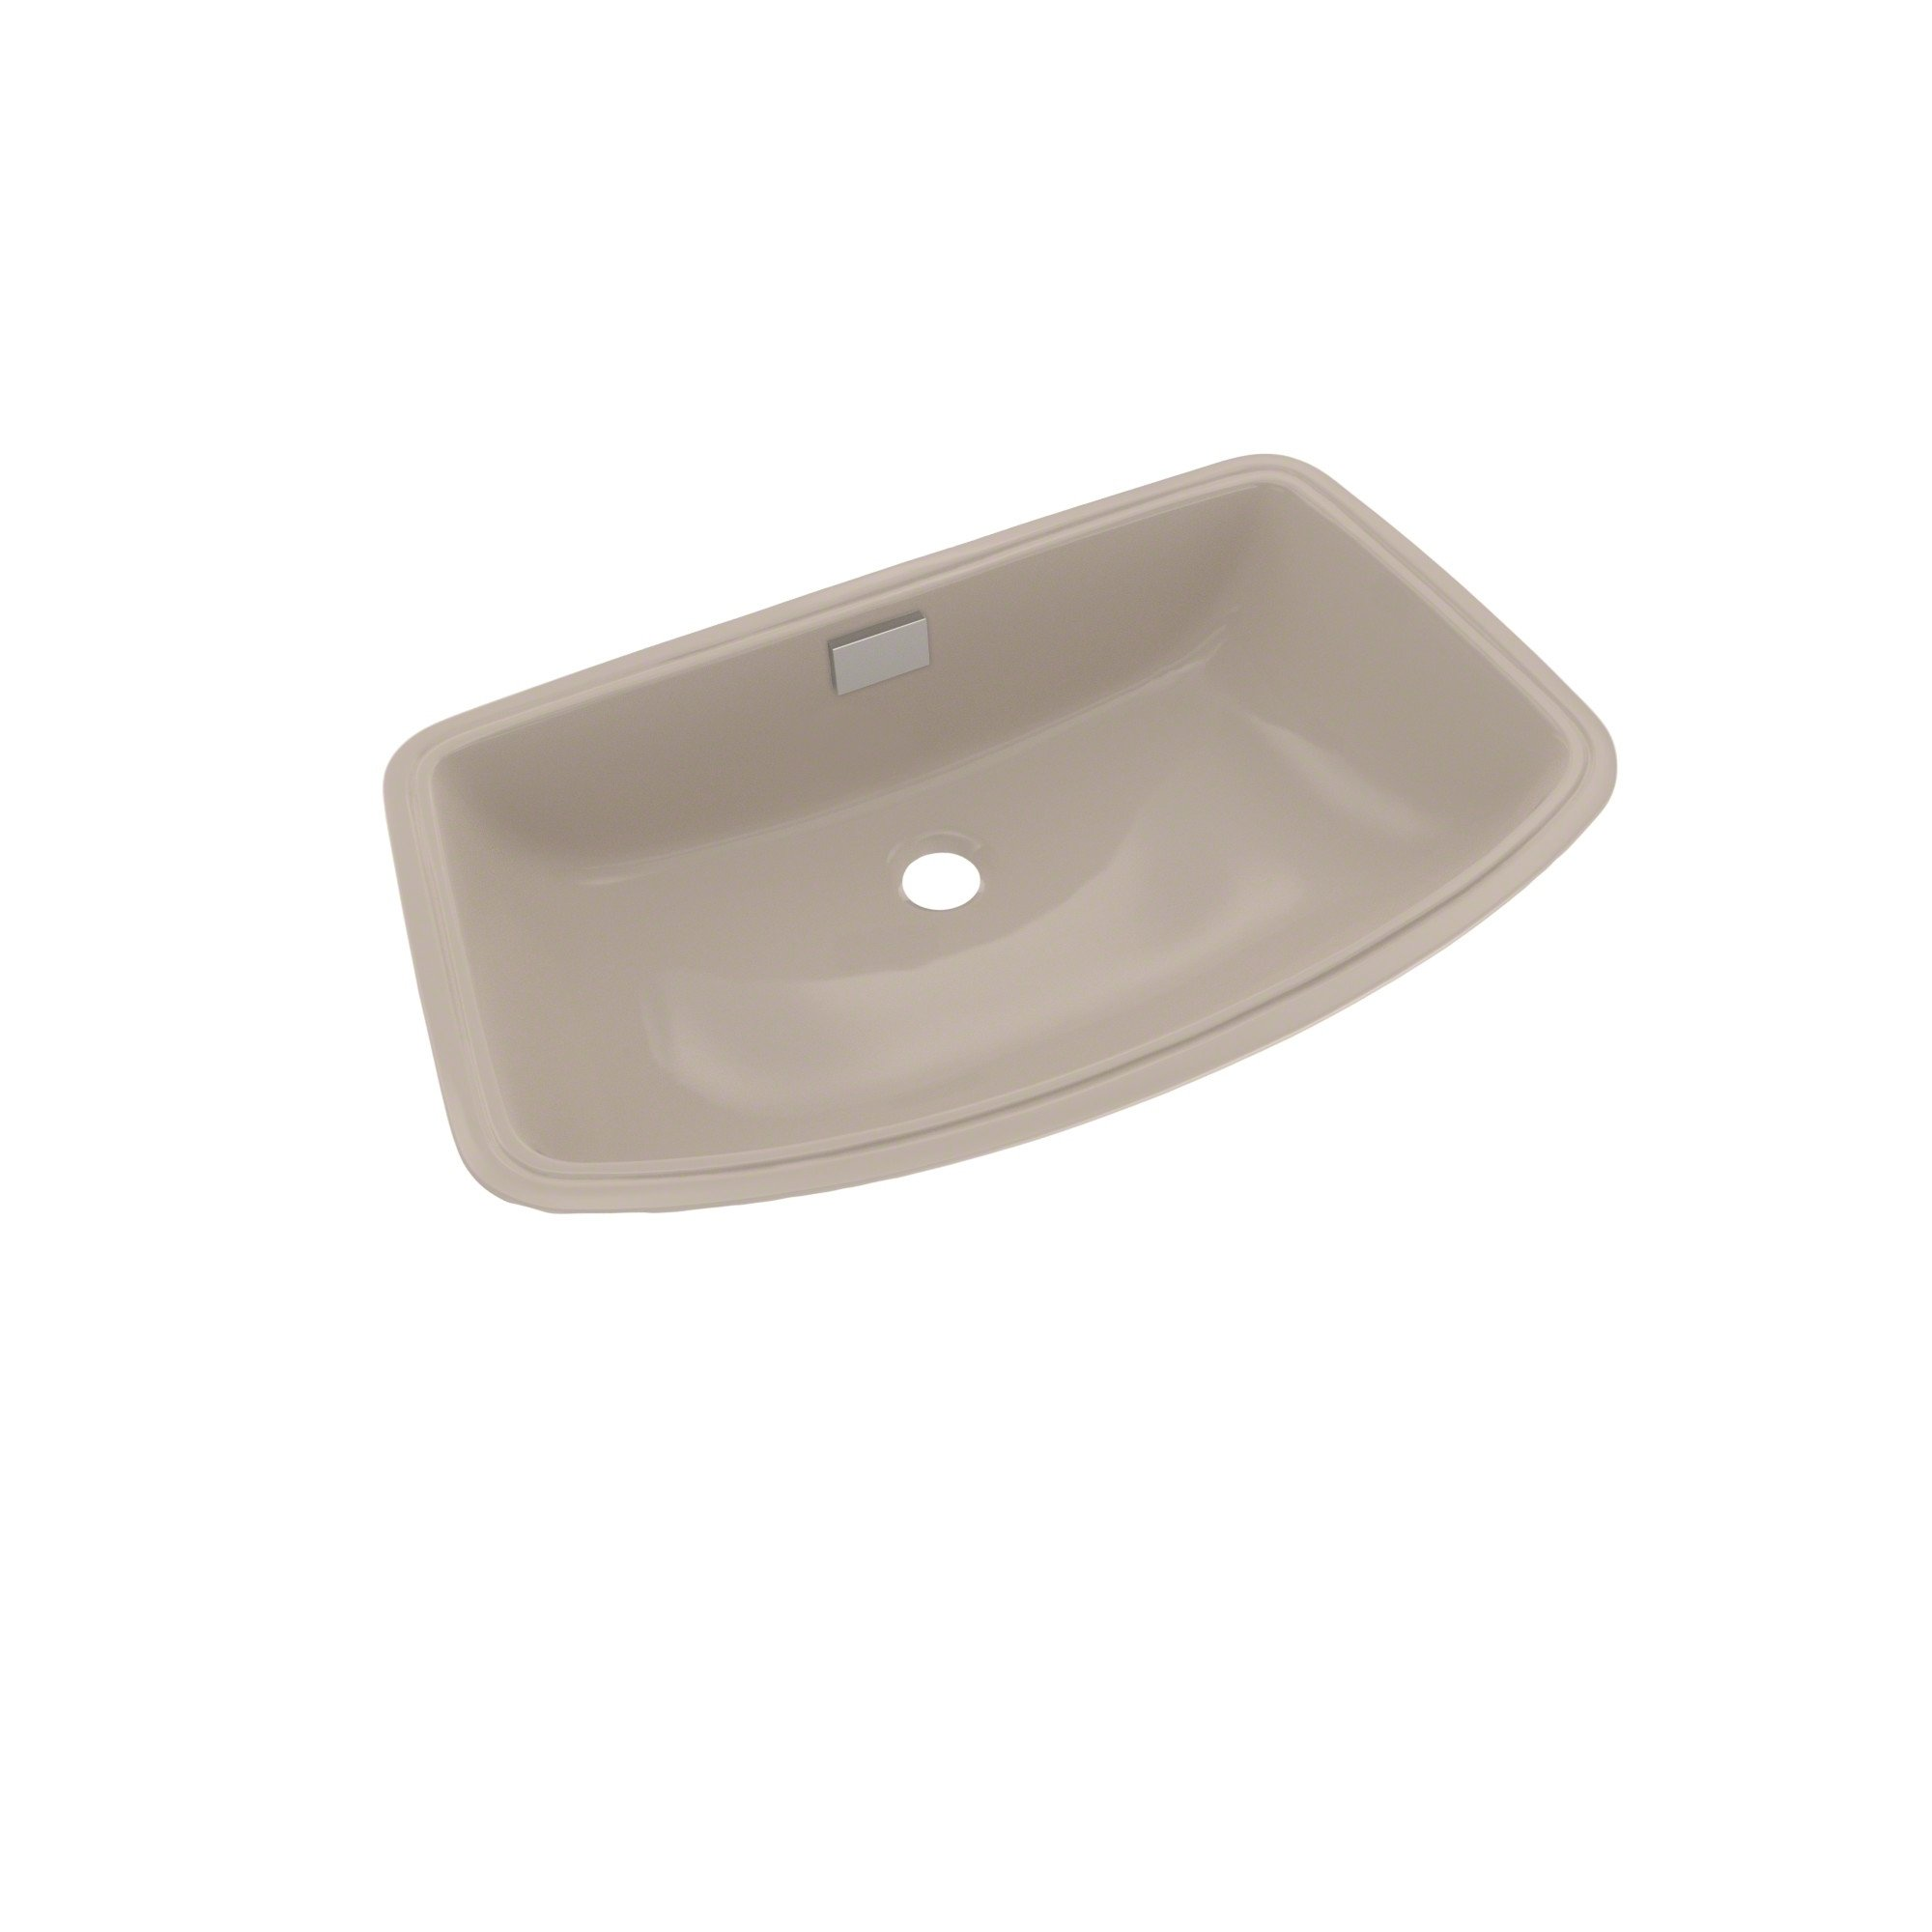 Toto Soiree Arched Front Rectangular Undermount Bathroom Sink Bone Ivory Lt967 03 Undermount Bathroom Sink Bathroom Sink Copper Sink Care